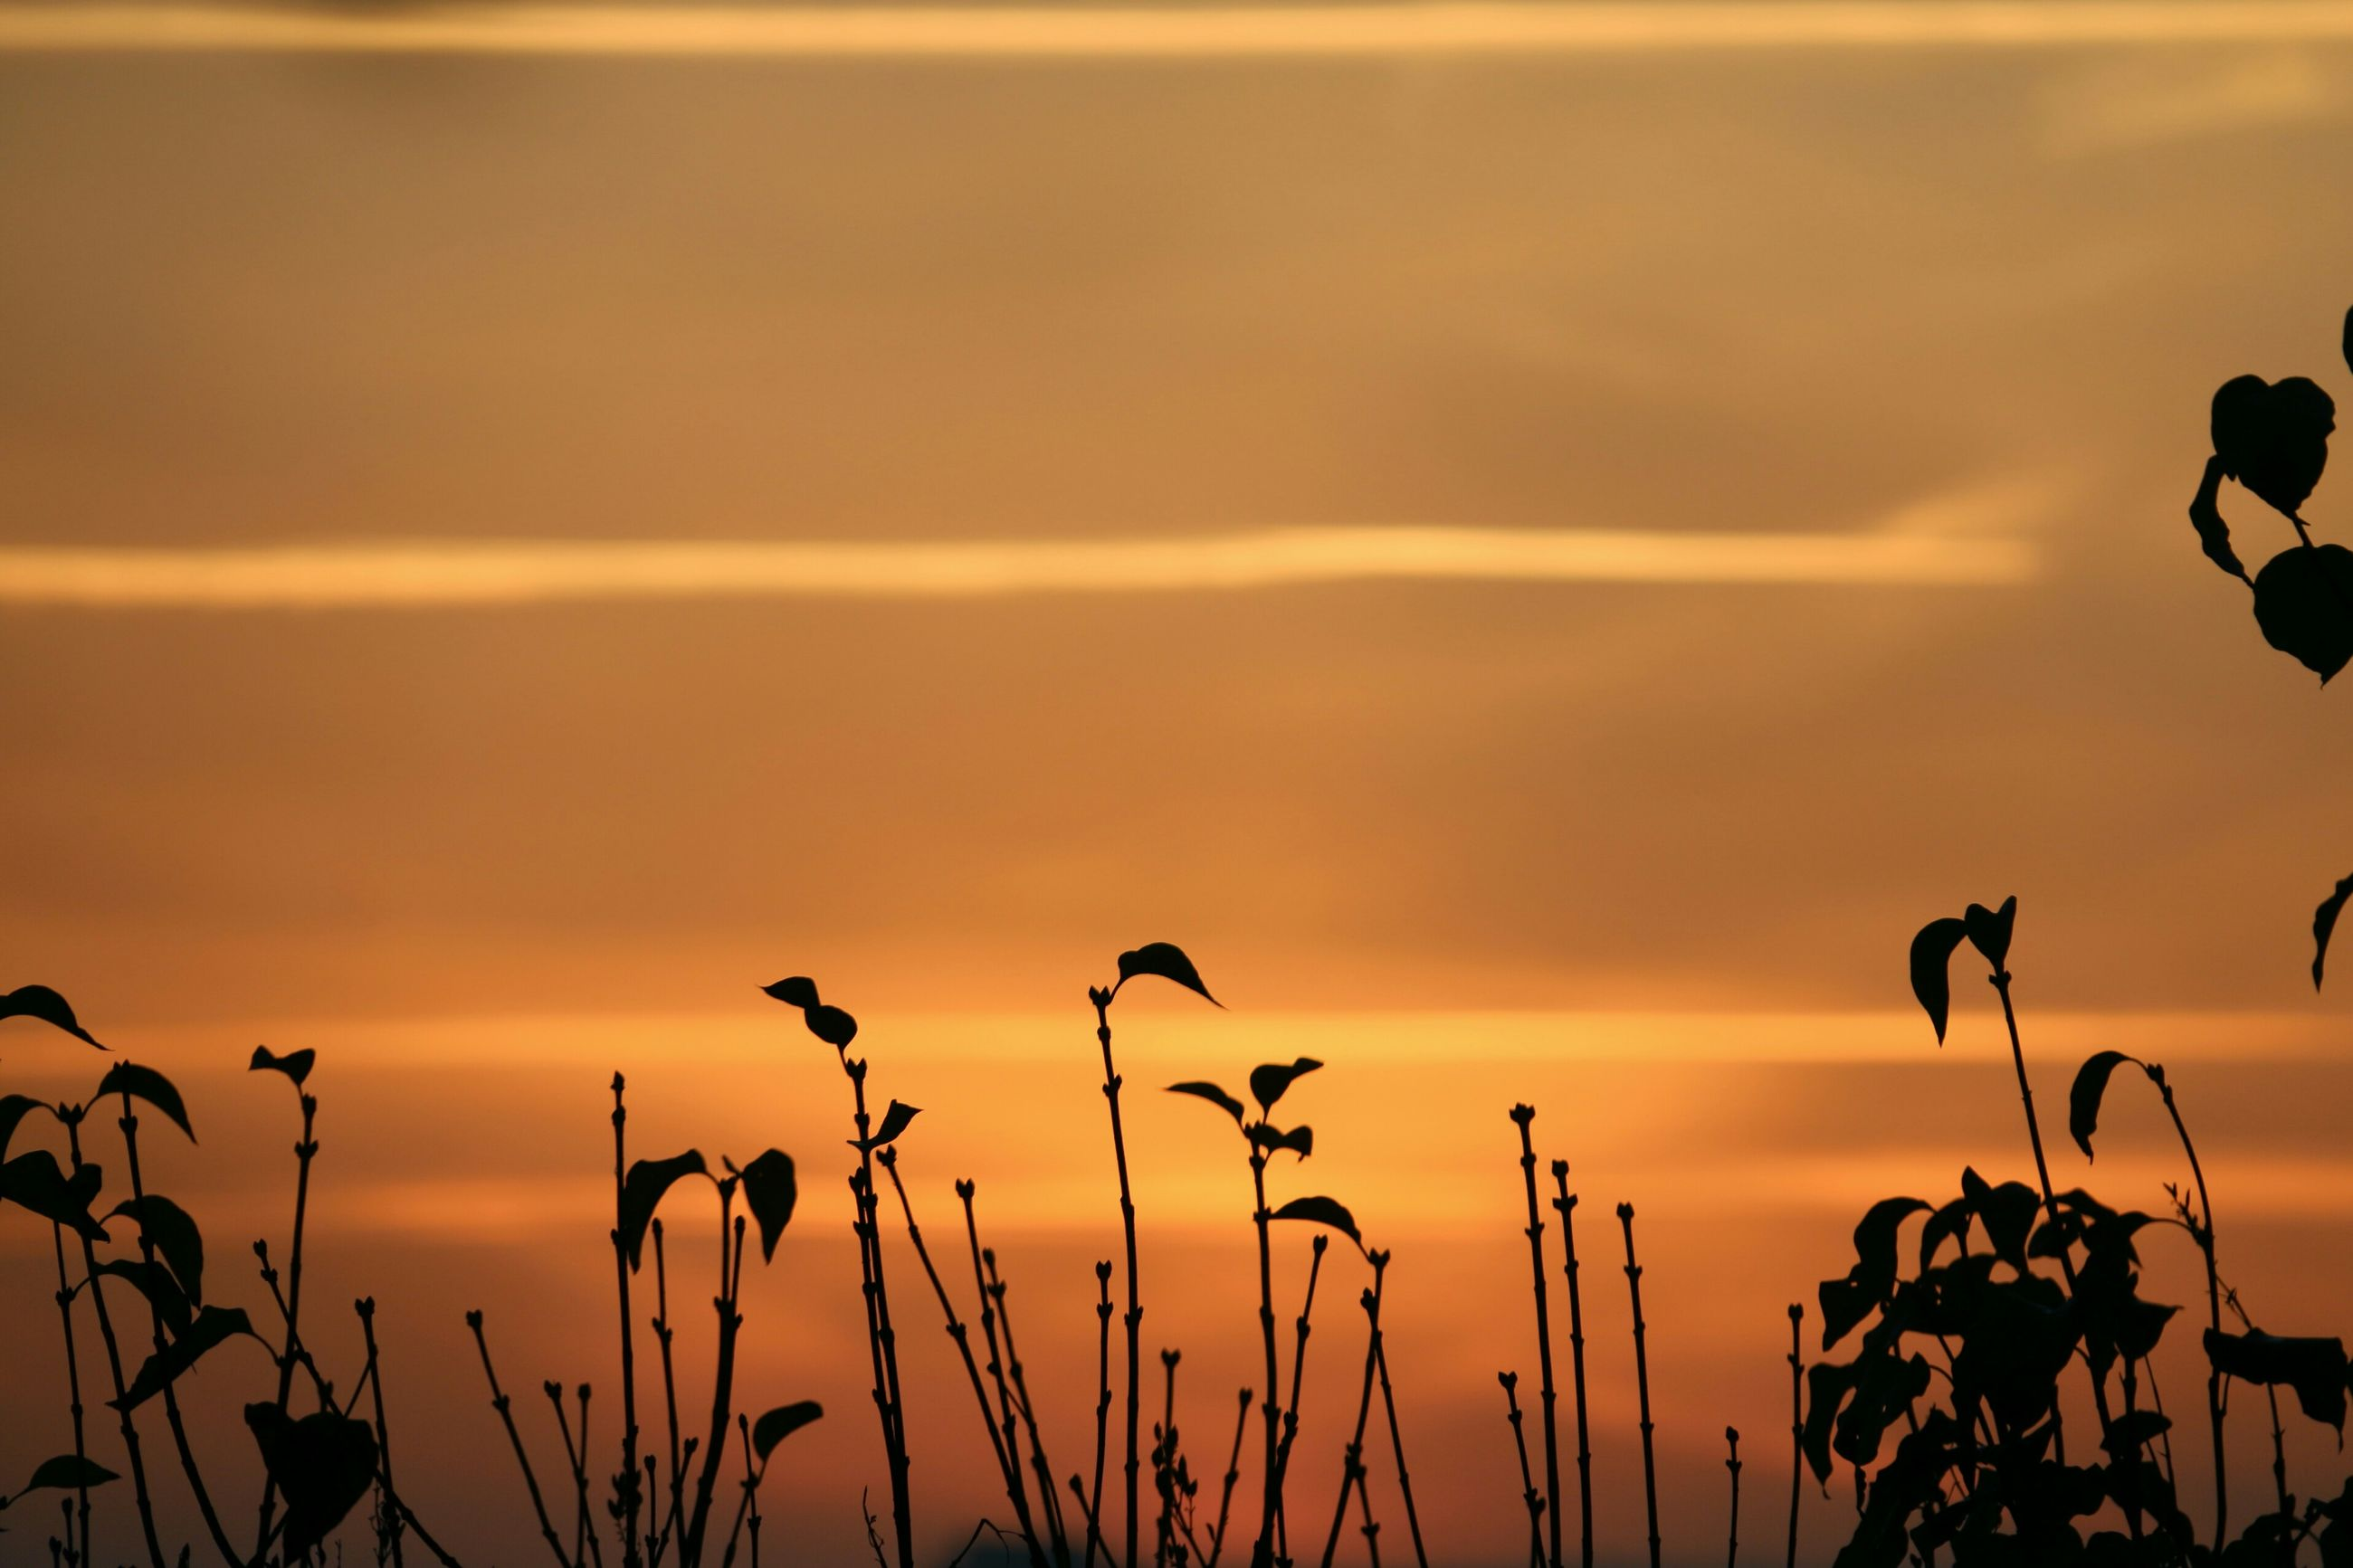 sunset, sky, silhouette, plant, orange color, nature, beauty in nature, growth, tranquility, focus on foreground, cloud - sky, stem, scenics, tranquil scene, field, low angle view, cloud, outdoors, no people, close-up